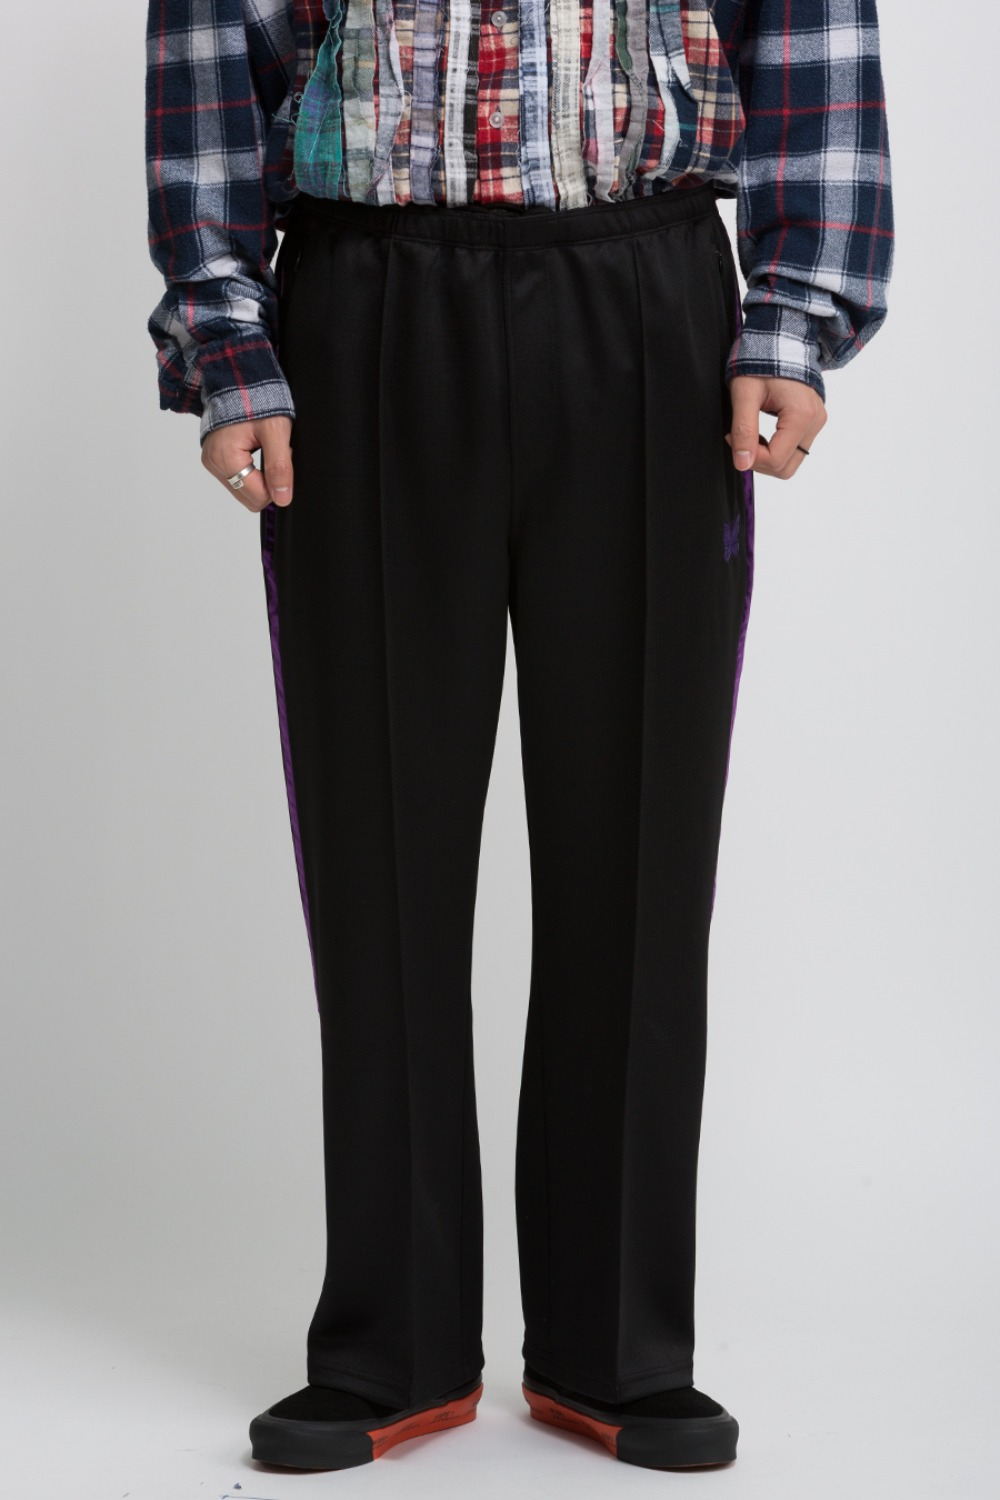 SIDE LINE SEAM POCKET PANT BRIGHT POLY JERSEY BLACK/PURPLE